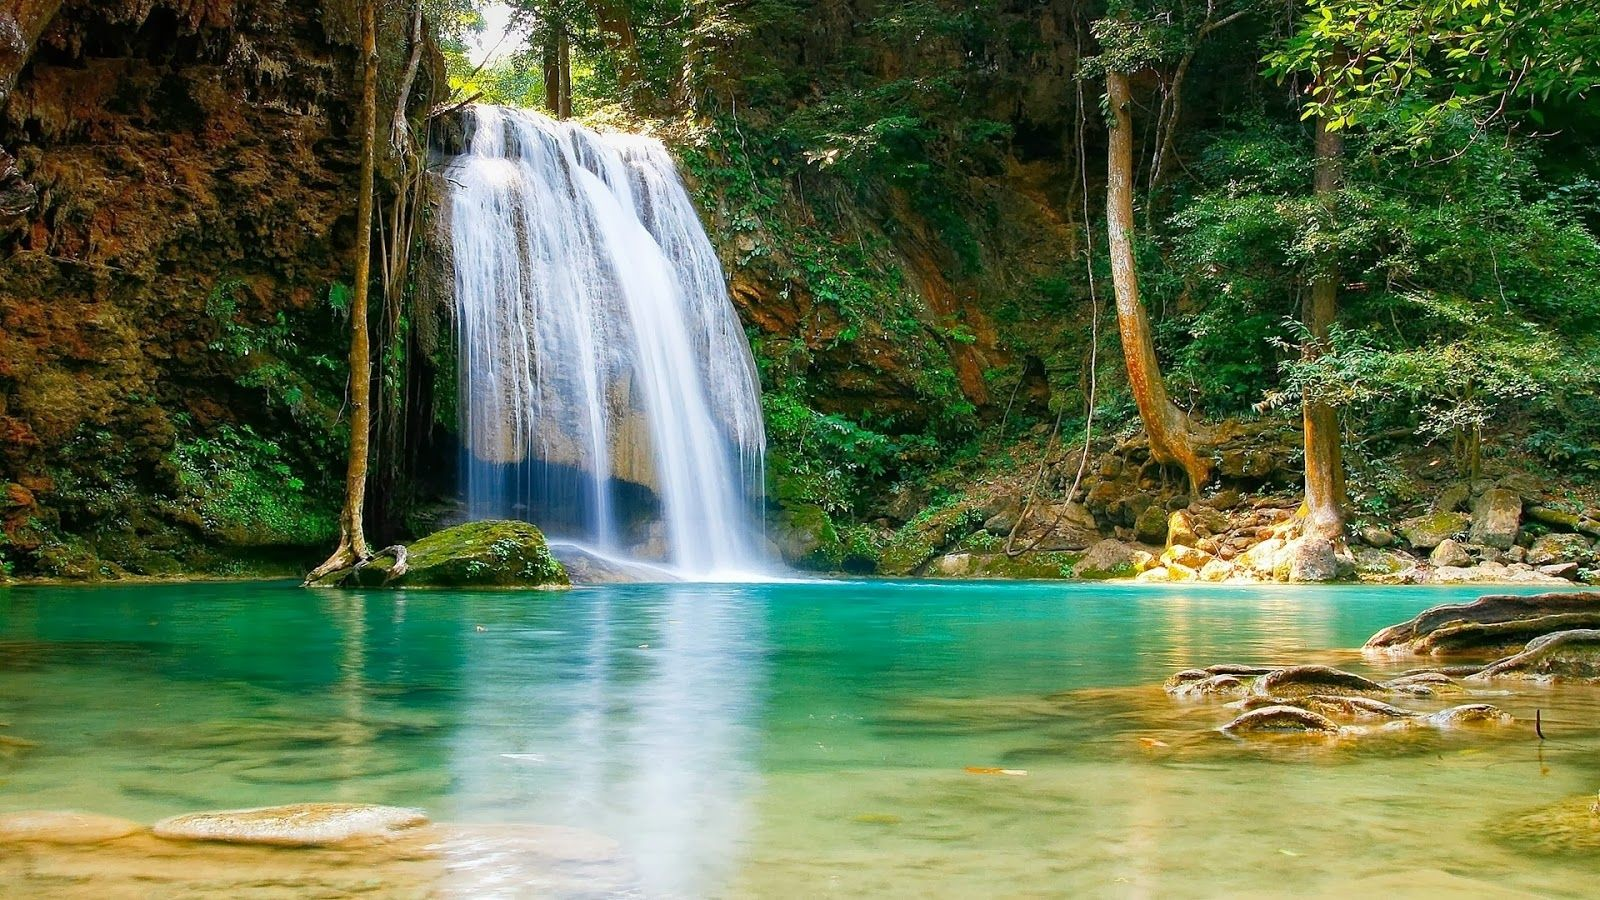 Waterfall Wallpaper Scenery Forest Free Desktop